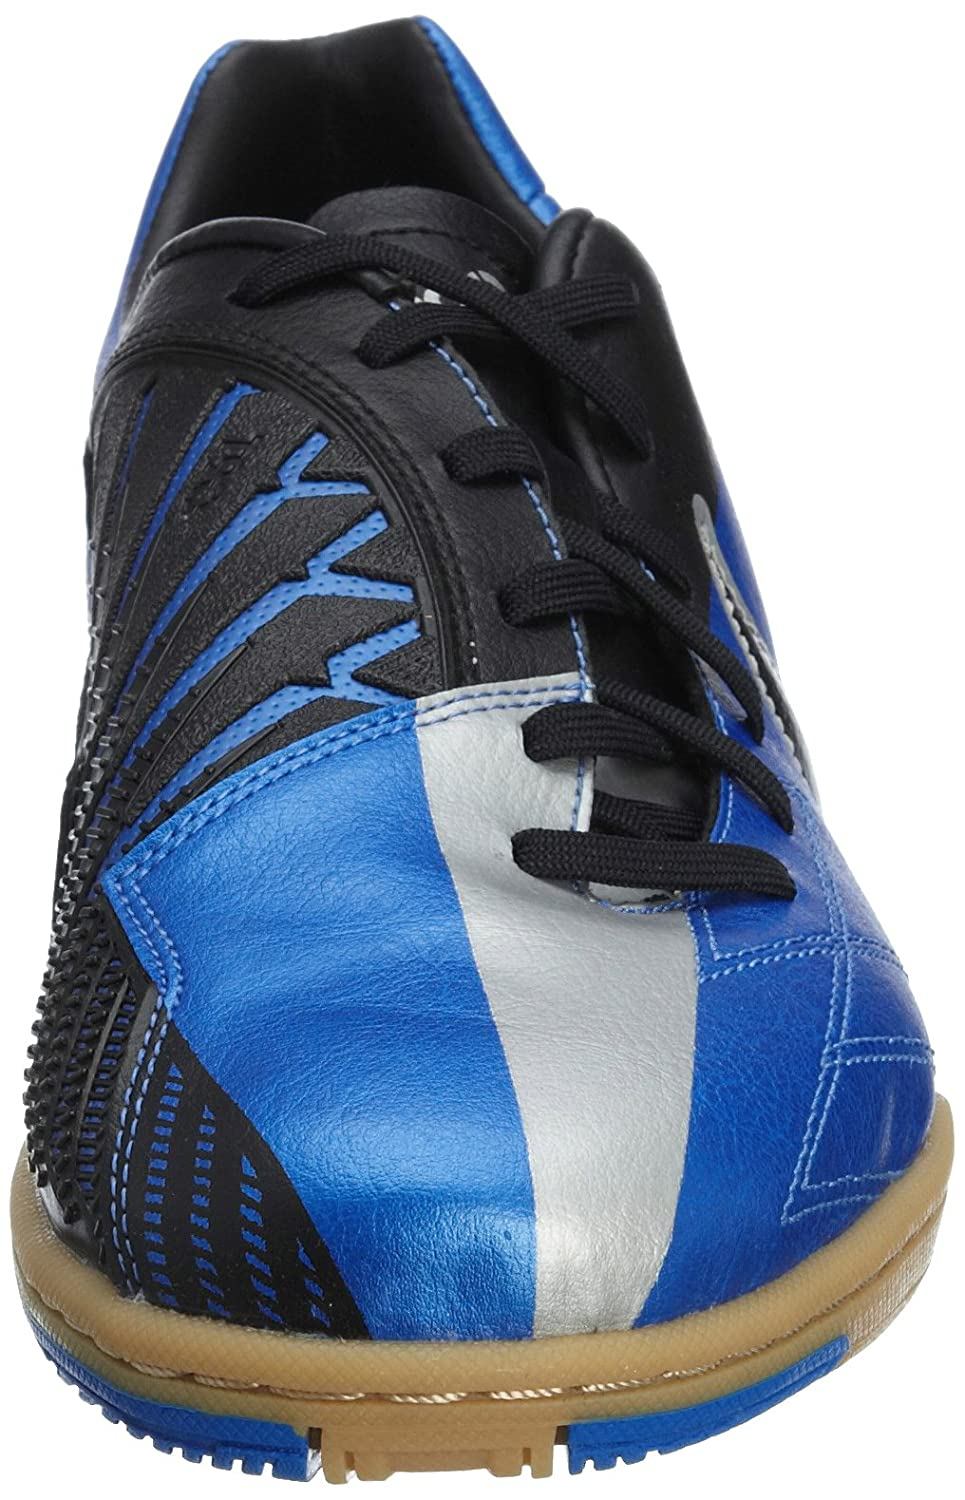 5f9a67e38 Amazon.com | Nike Total 90 Shoot IV IC Men's Indoor Soccer Shoes (6.5) Blue  | Shoes